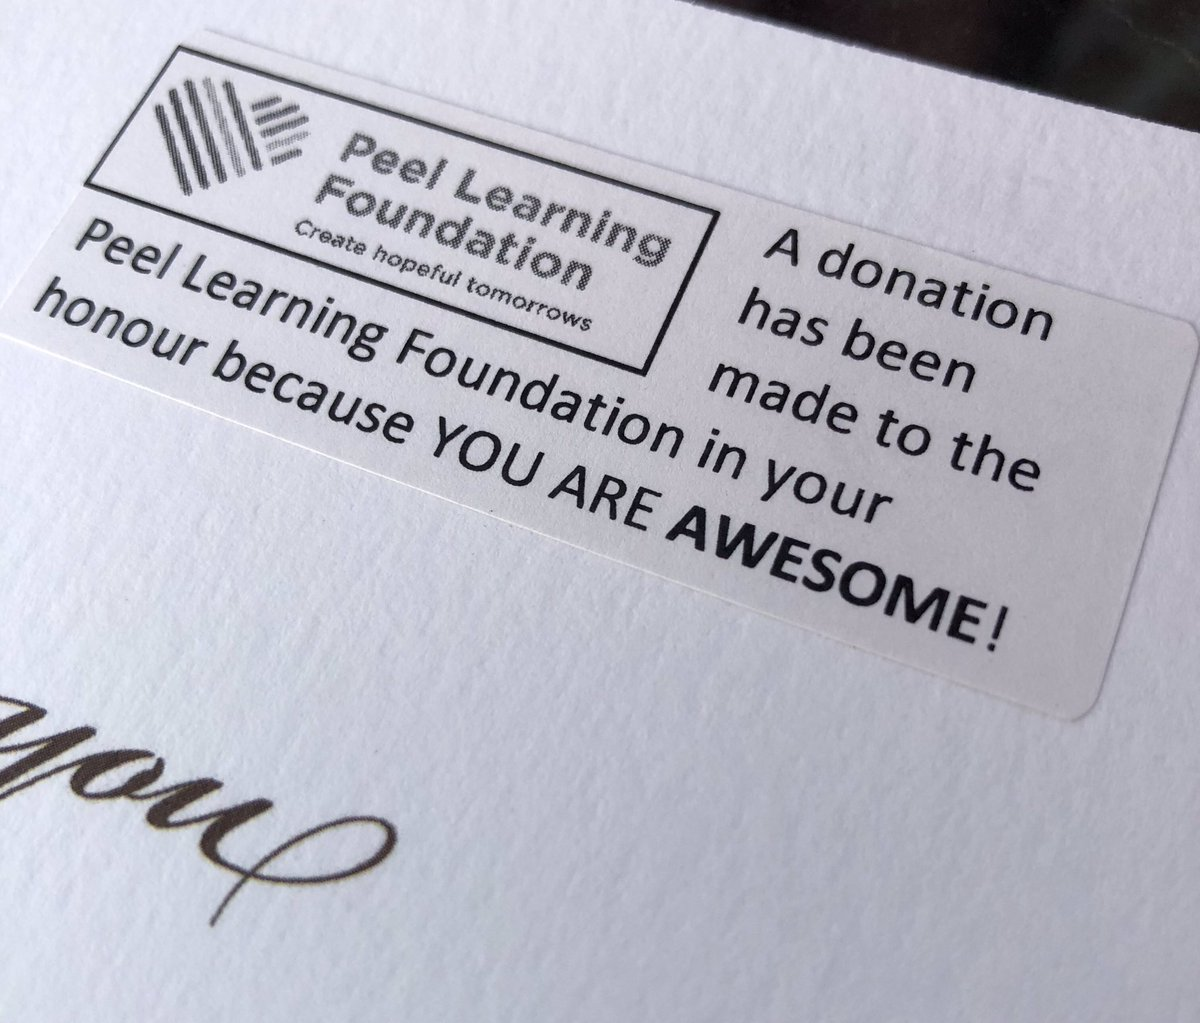 Celebrating the hard work & resilience of our AWESOME @TonyPontesPS staff with a donation to the @PeelLearningFDN!  With gratitude and kindness.... https://t.co/9gz5cFJ1Eo